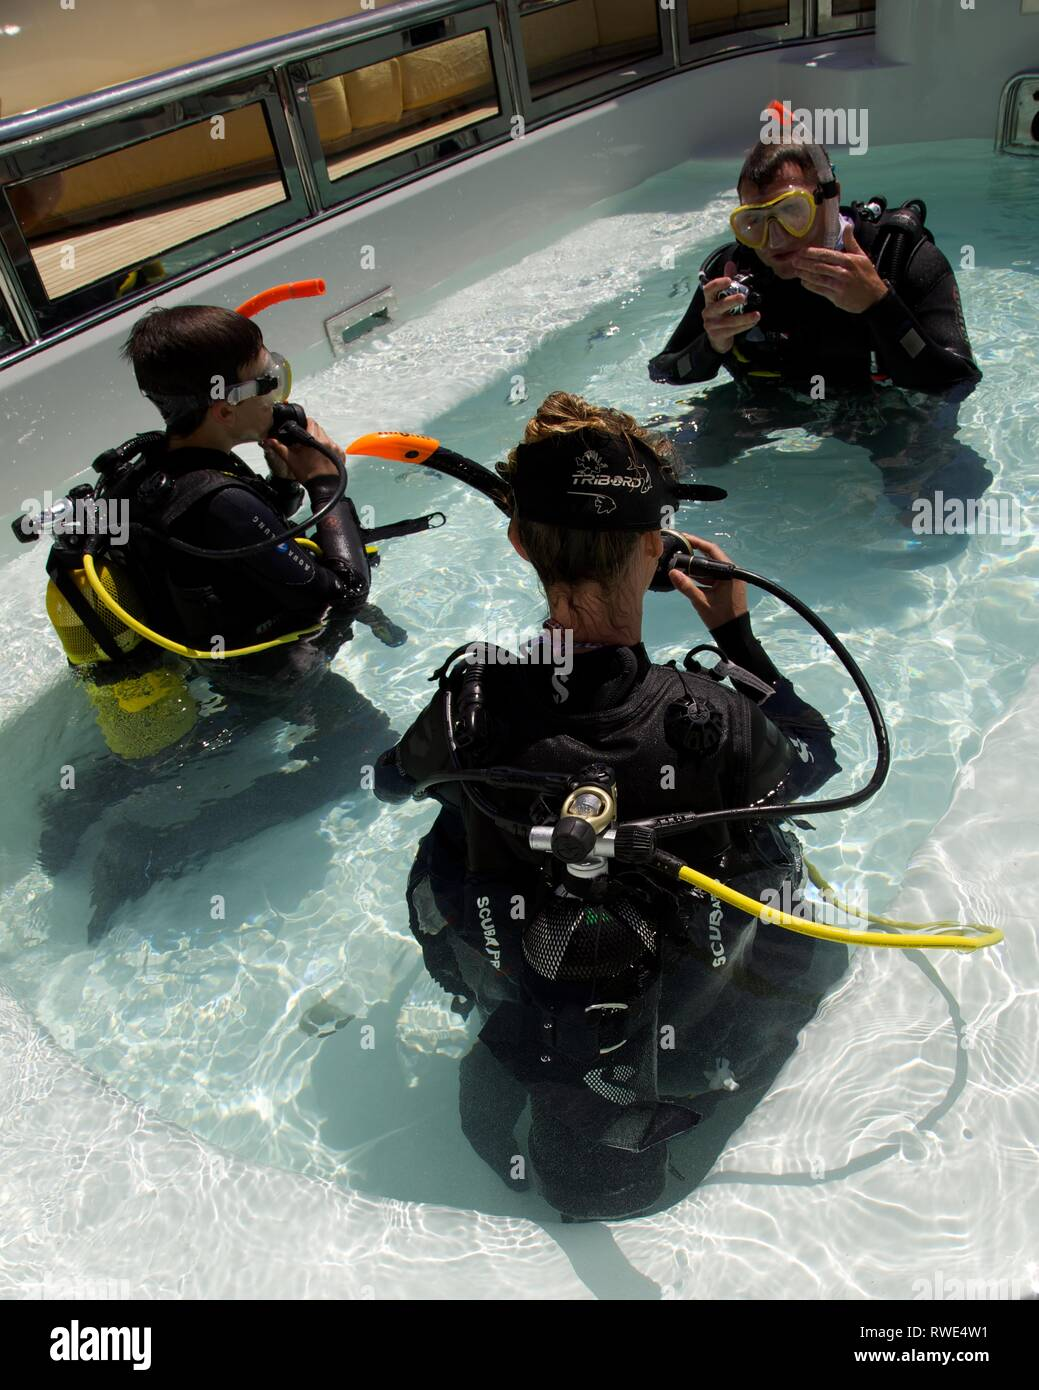 Group of three divers in a pool learning to dive - Stock Image